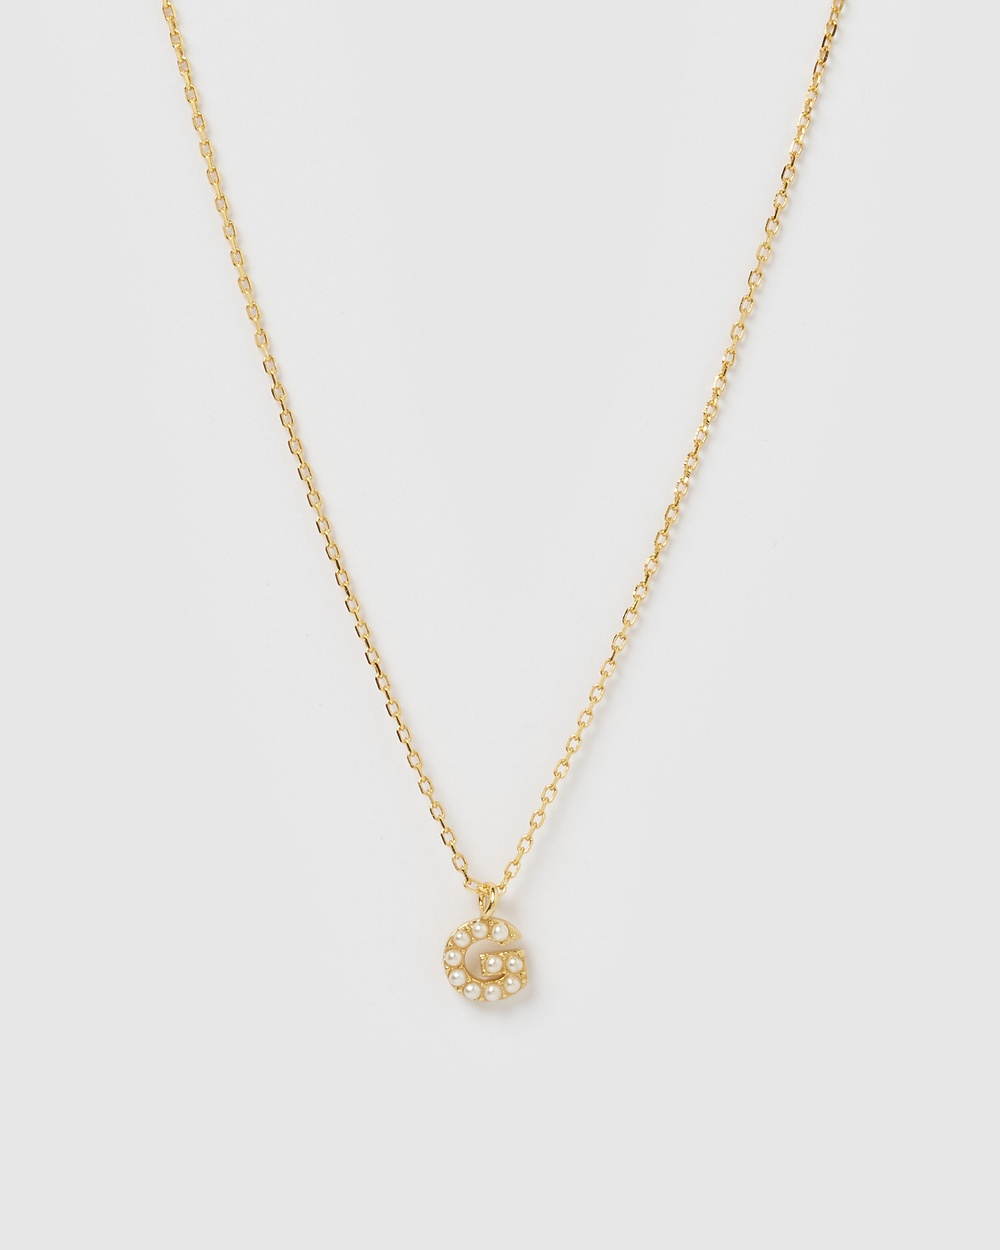 Izoa Pearl Letter G Necklace Gold Jewellery Gold